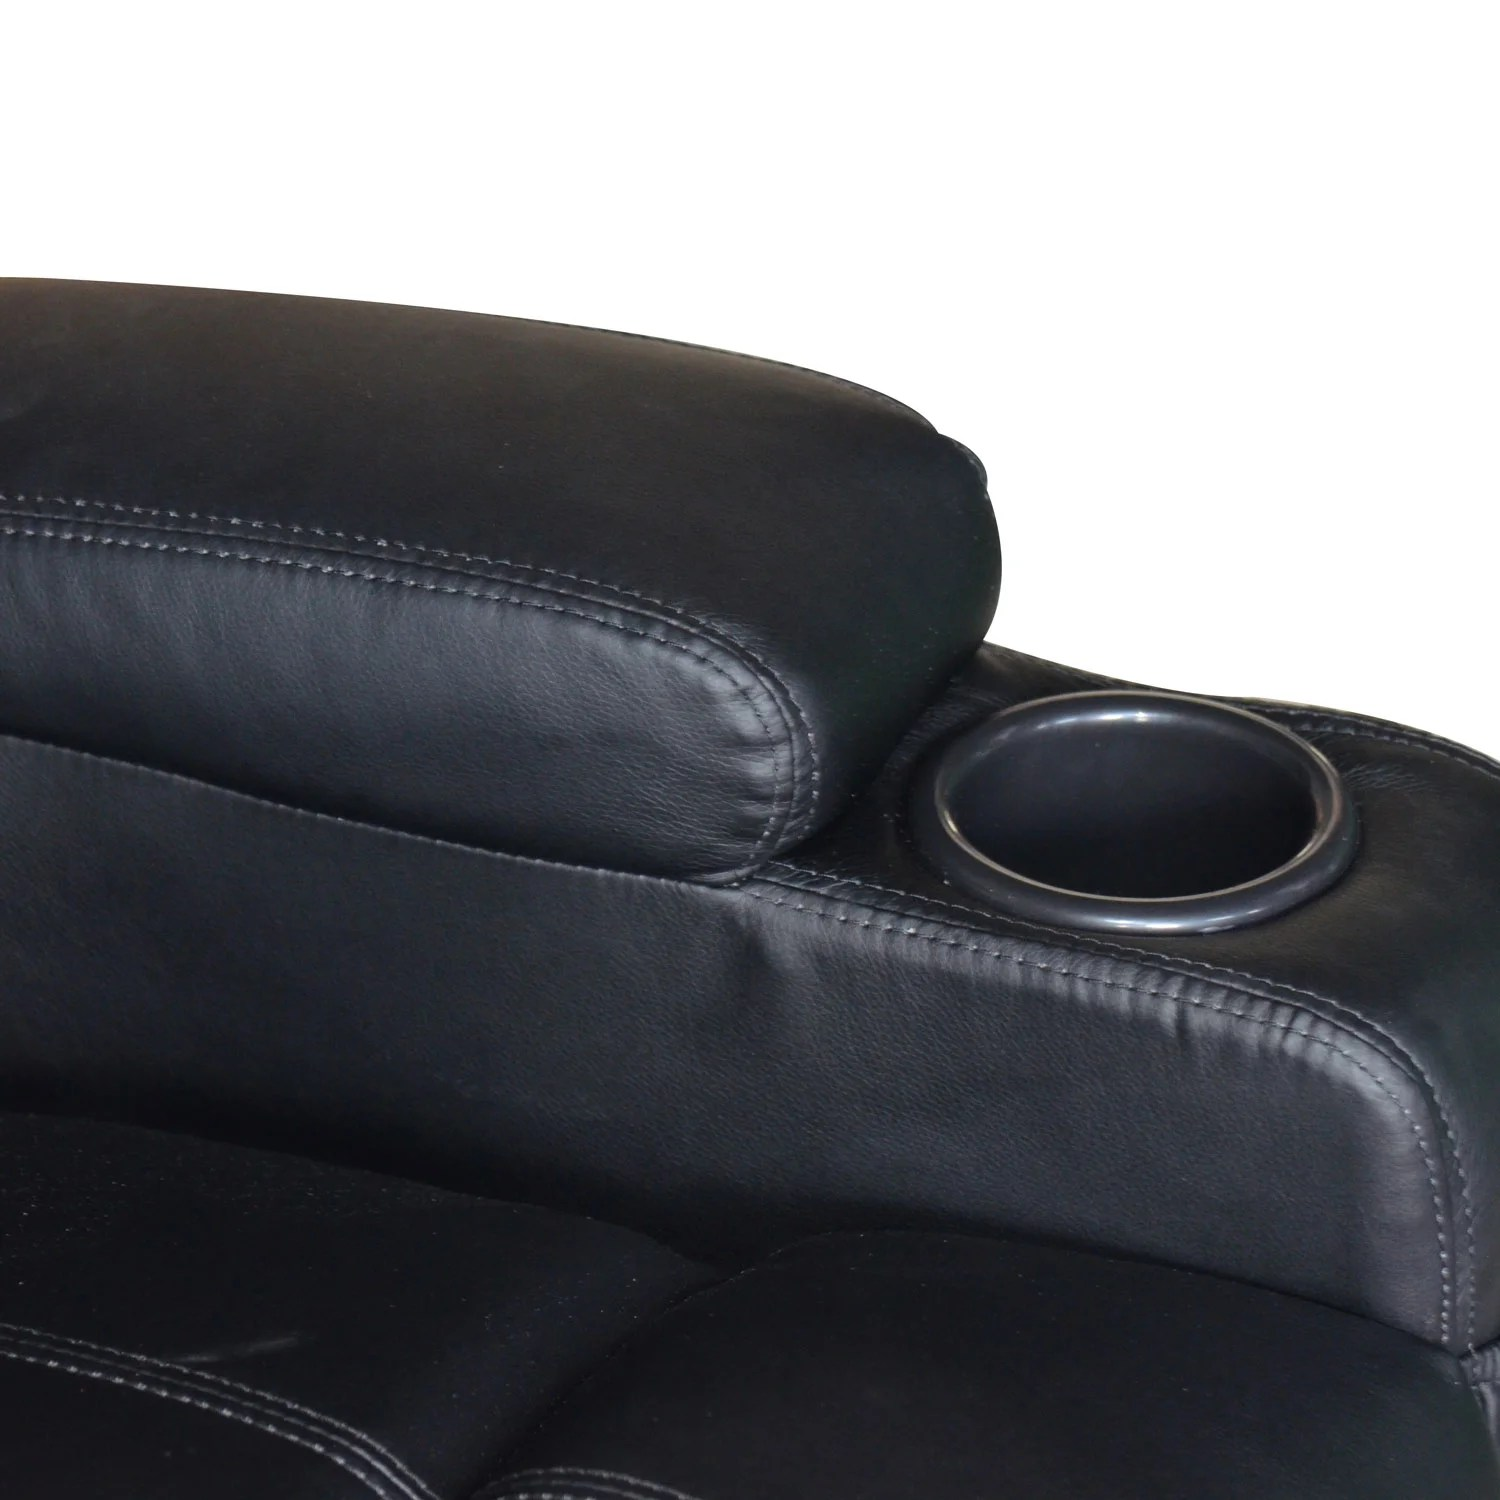 Kinosessel Vibration Outsunny Homcom Deluxe Heated Vibrating Vinyl Leather